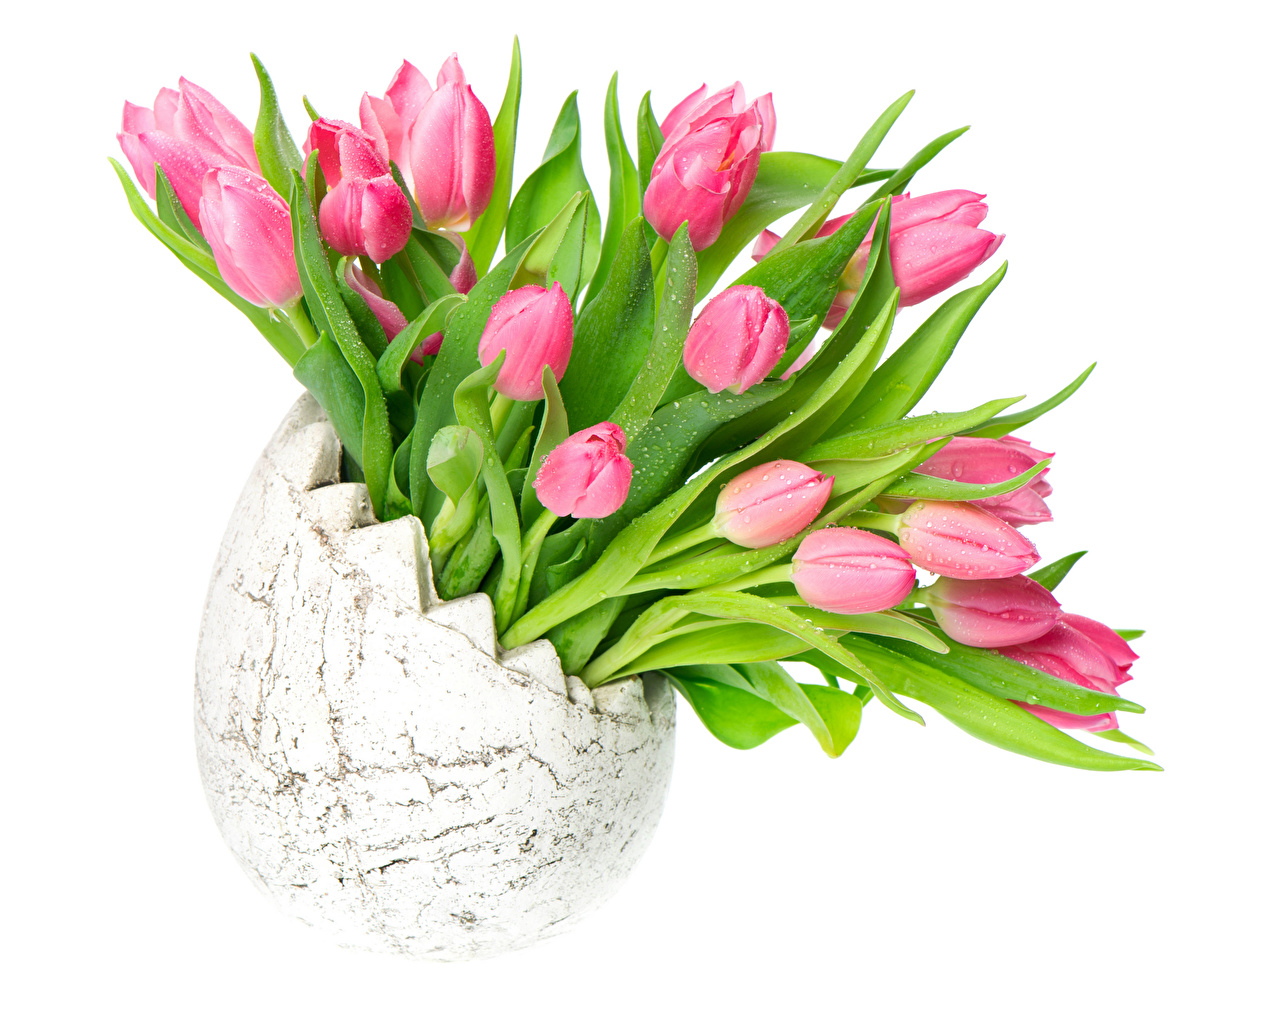 Photos Tulips Pink color Flowers Vase White background